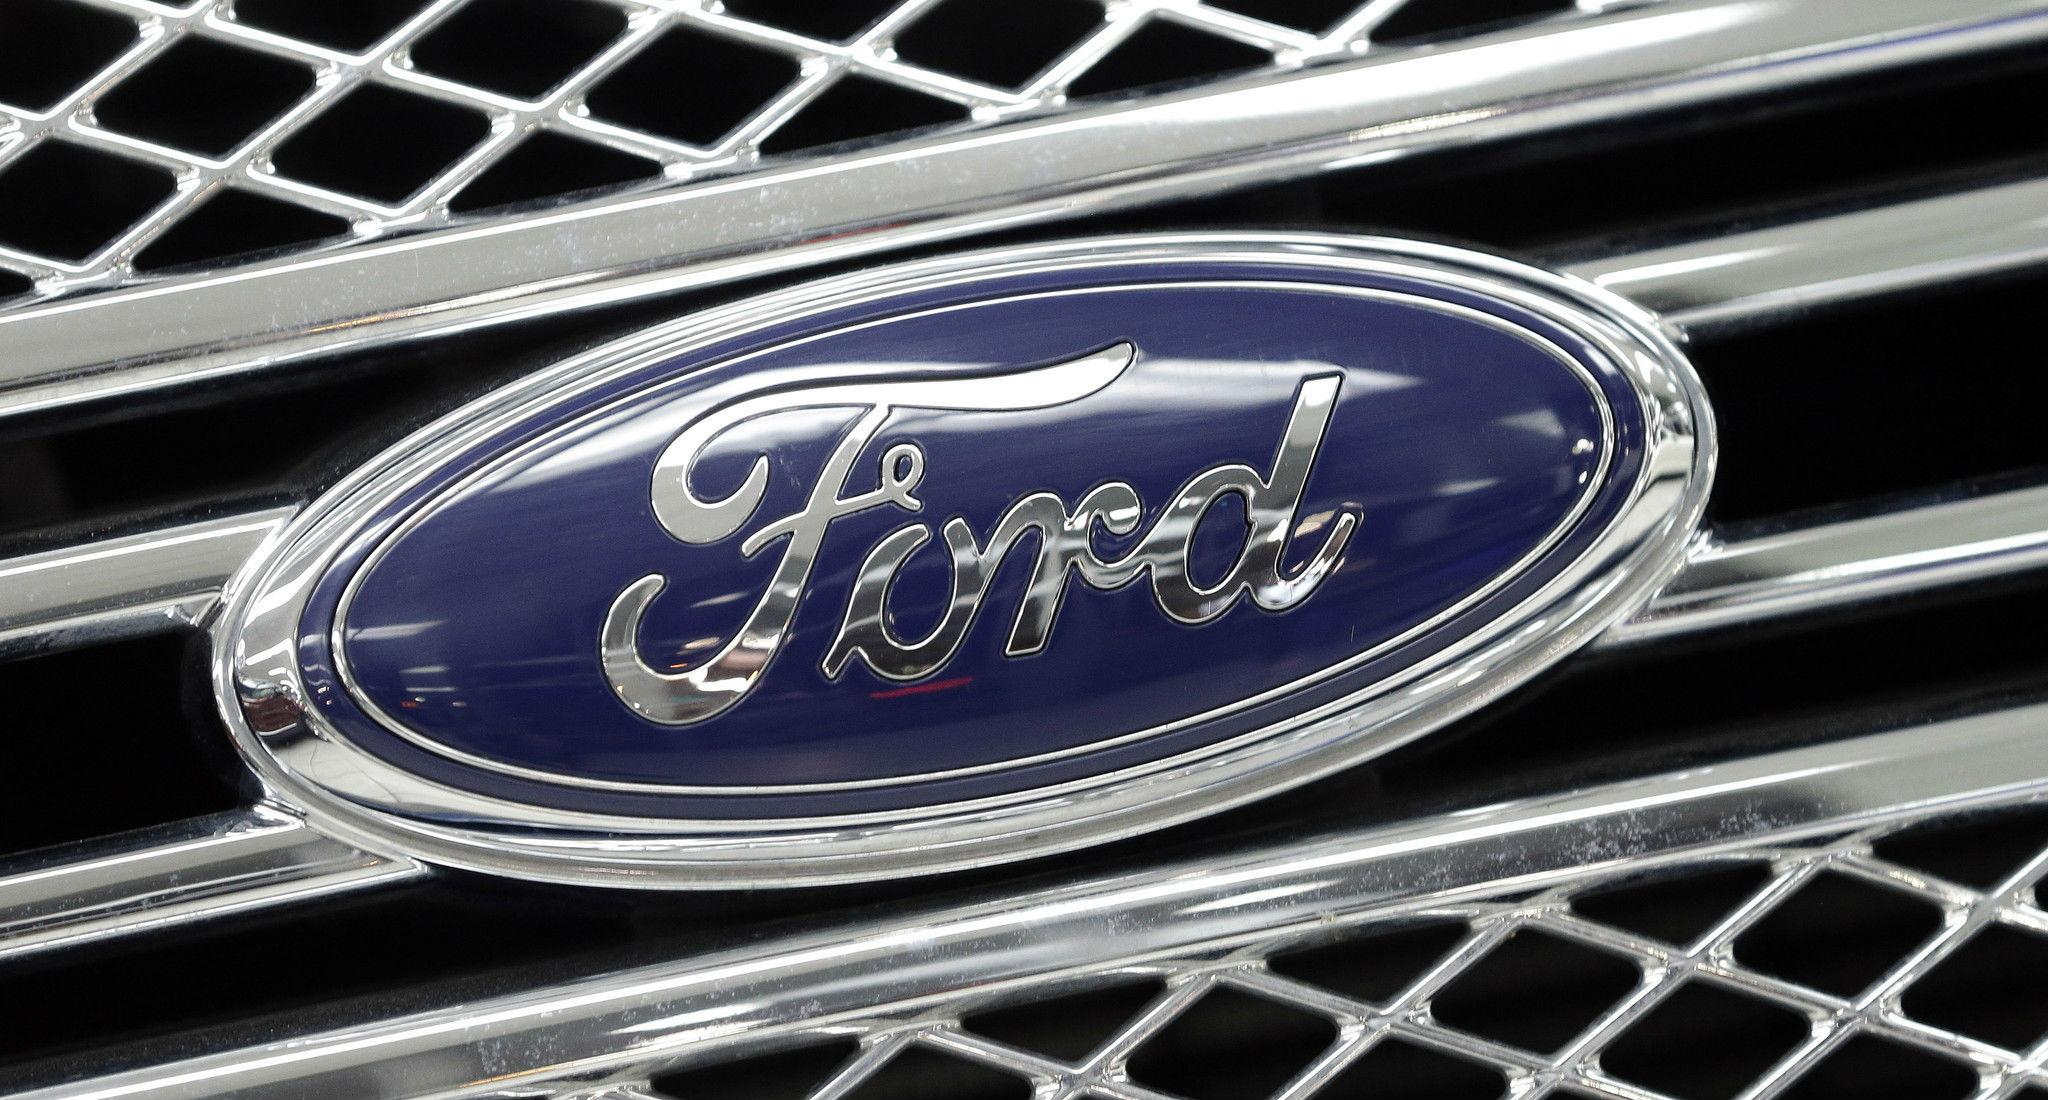 Donald trump had nothing to do with our new us jobs fiat chrysler trump was not reason for ford scrapping mexico car plant says ceo fandeluxe Choice Image